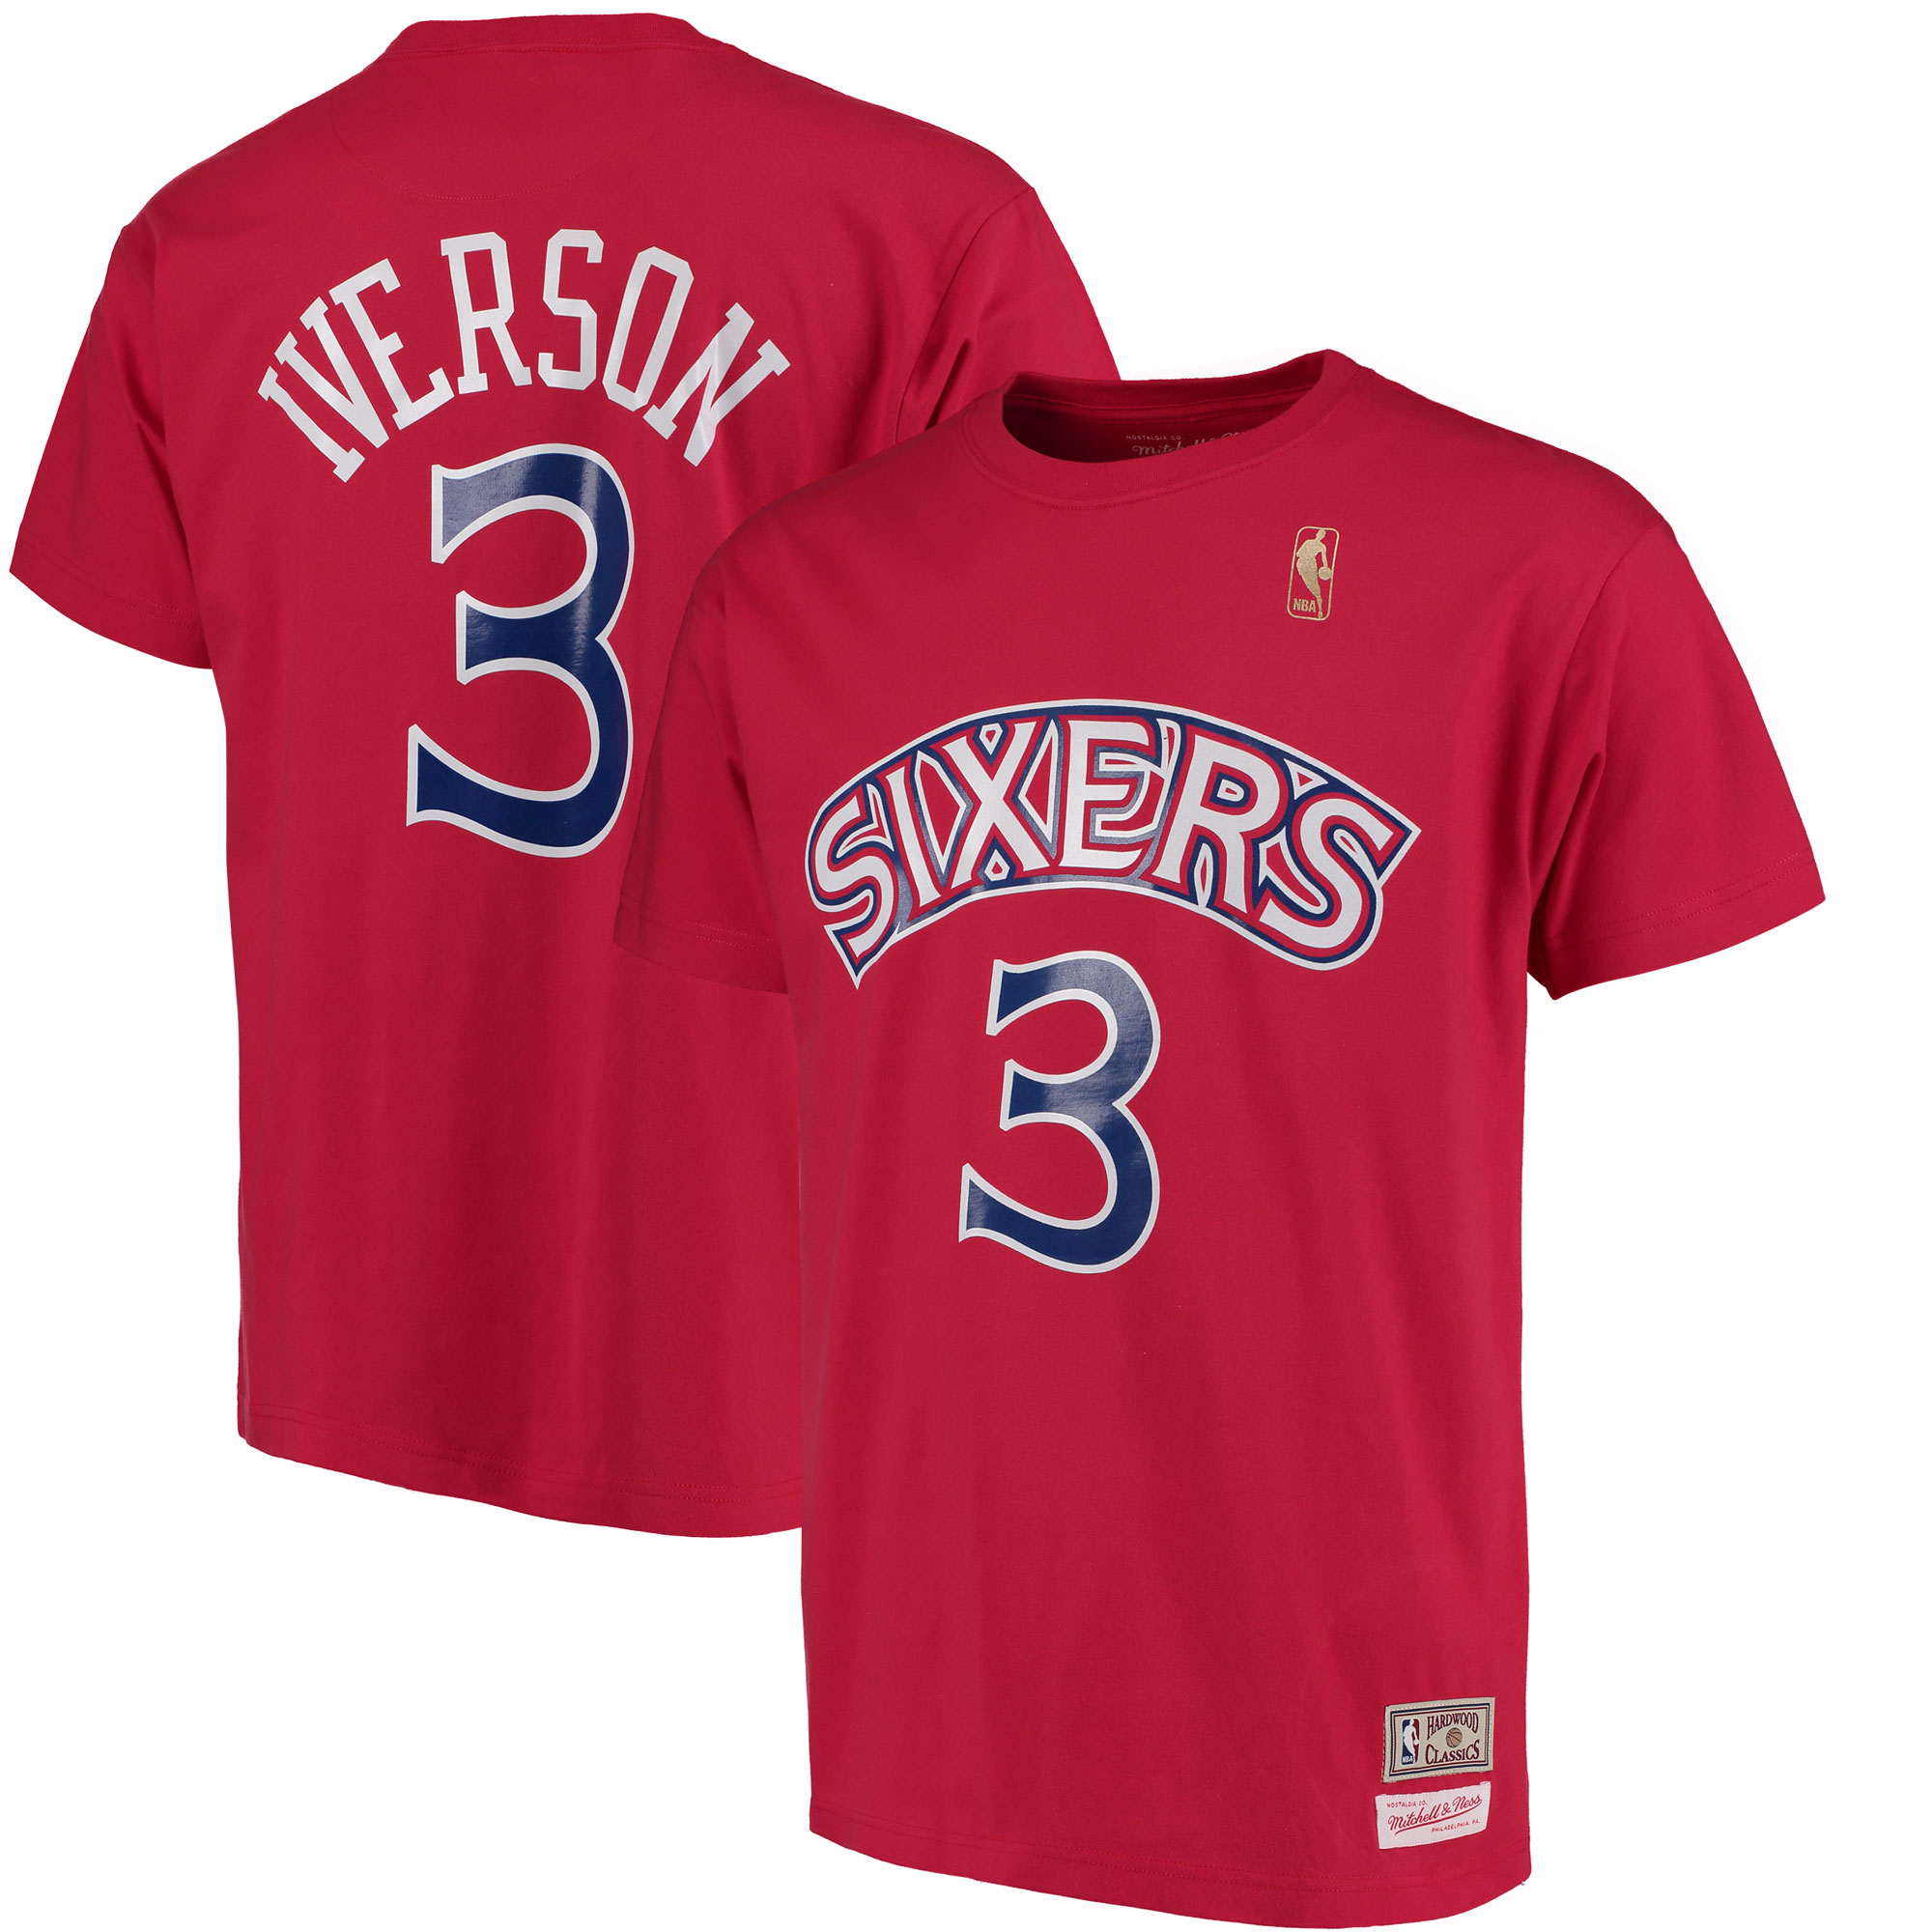 Allen Iverson Philadelphia 76ers Mitchell & Ness Hardwood Classics Retro Name & Number T-Shirt - Red